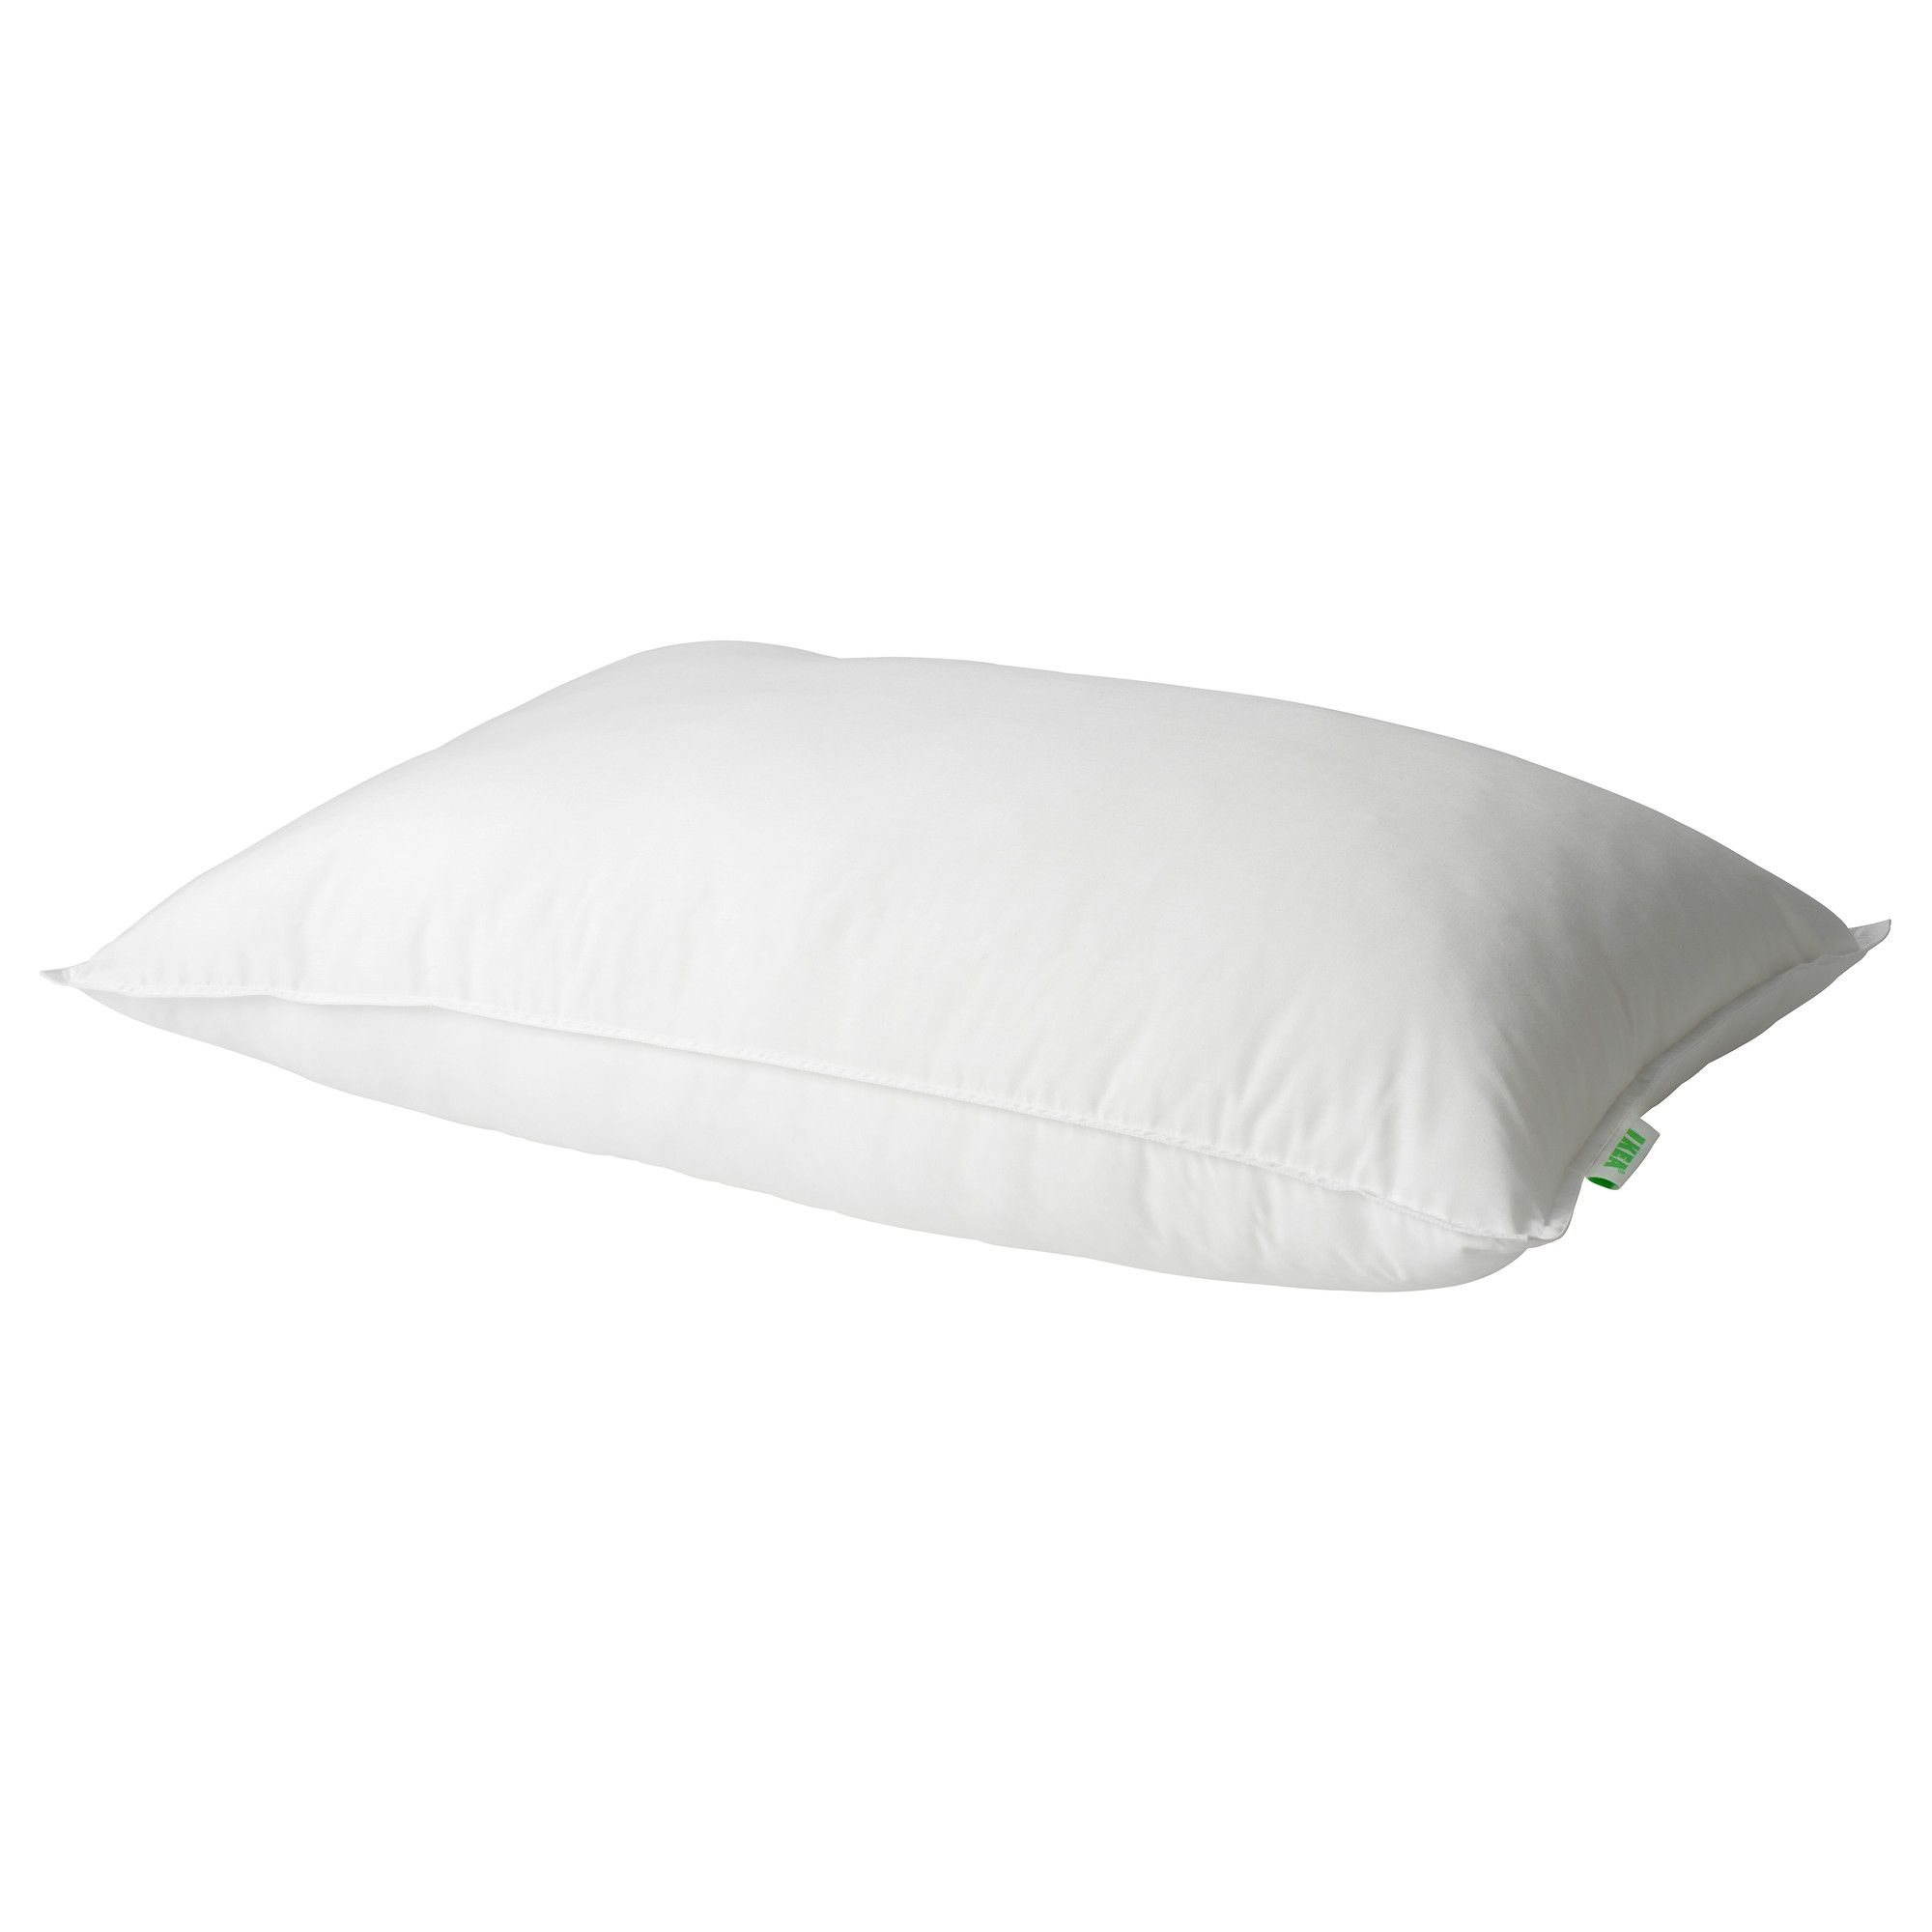 serene isotonic contour side ip or comforttech sleeper pillow com foam traditional walmart